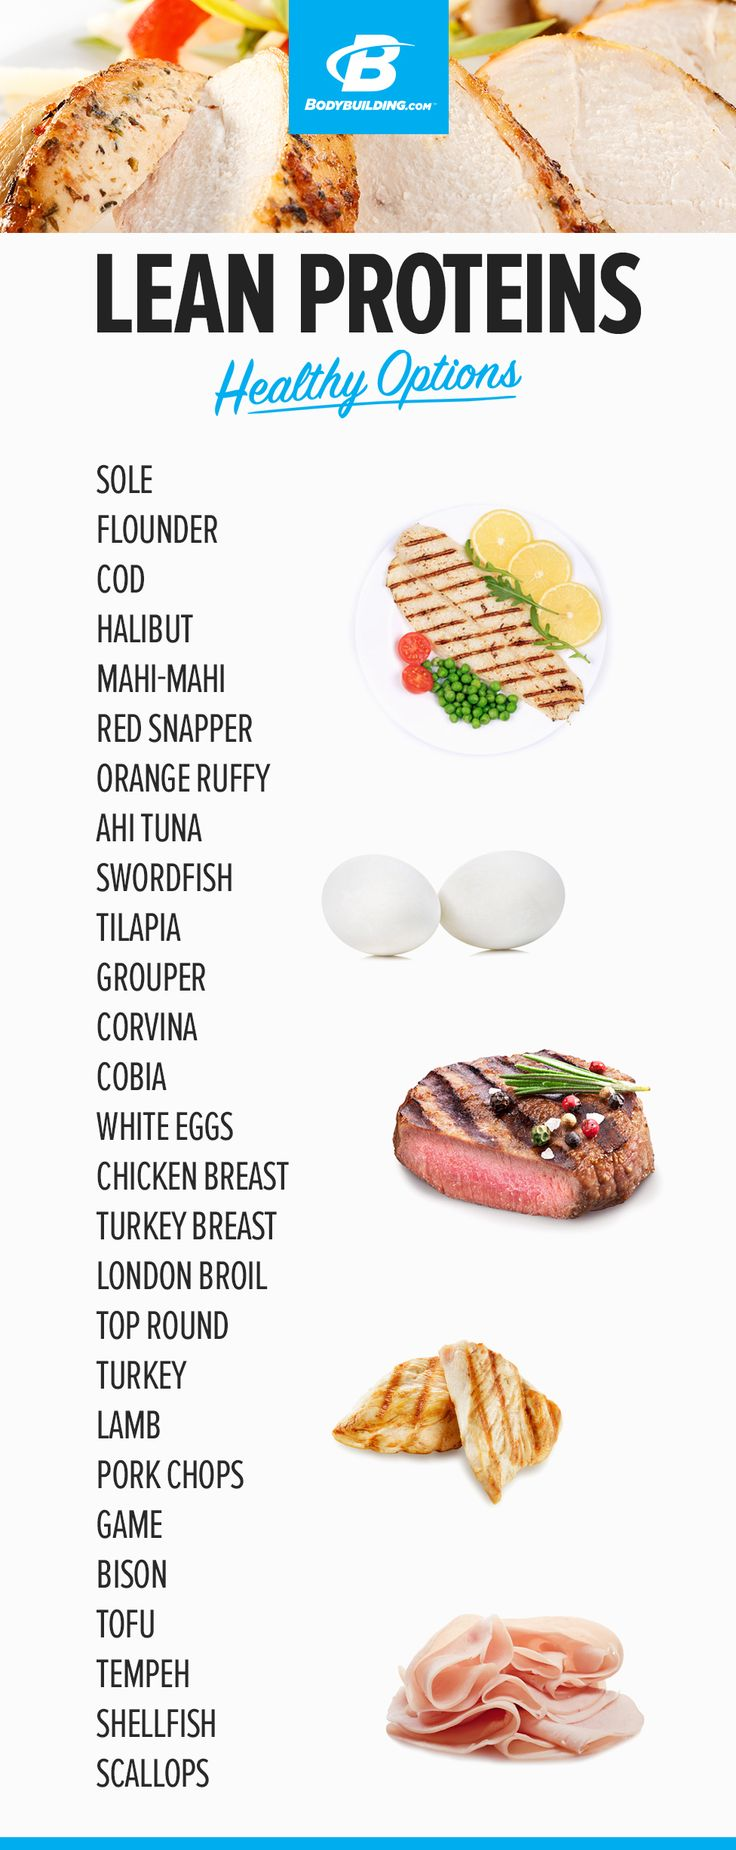 LEAN PROTEIN – HEALTHY OPTIONS! Every food item you need for a successful transformation.